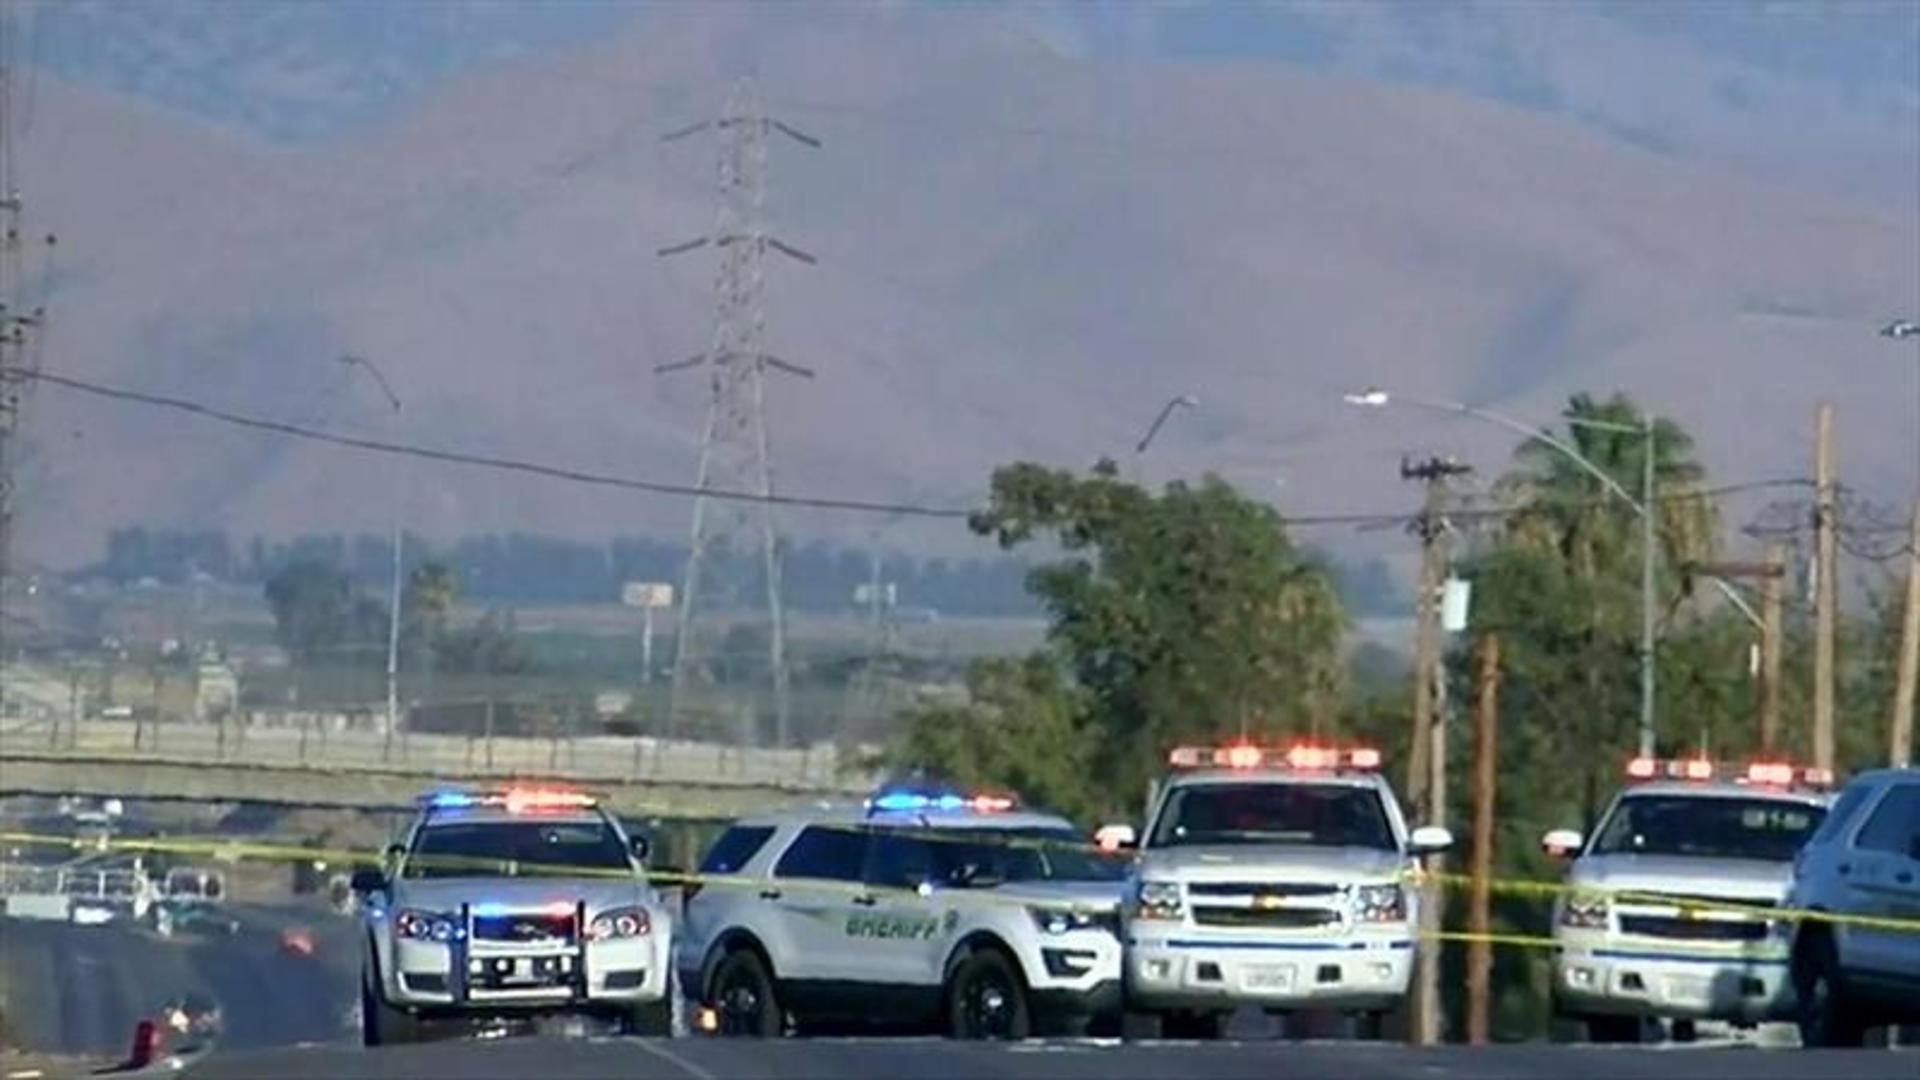 Six Dead Including Gunman, After Shooting Spree in Bakersfield, CA